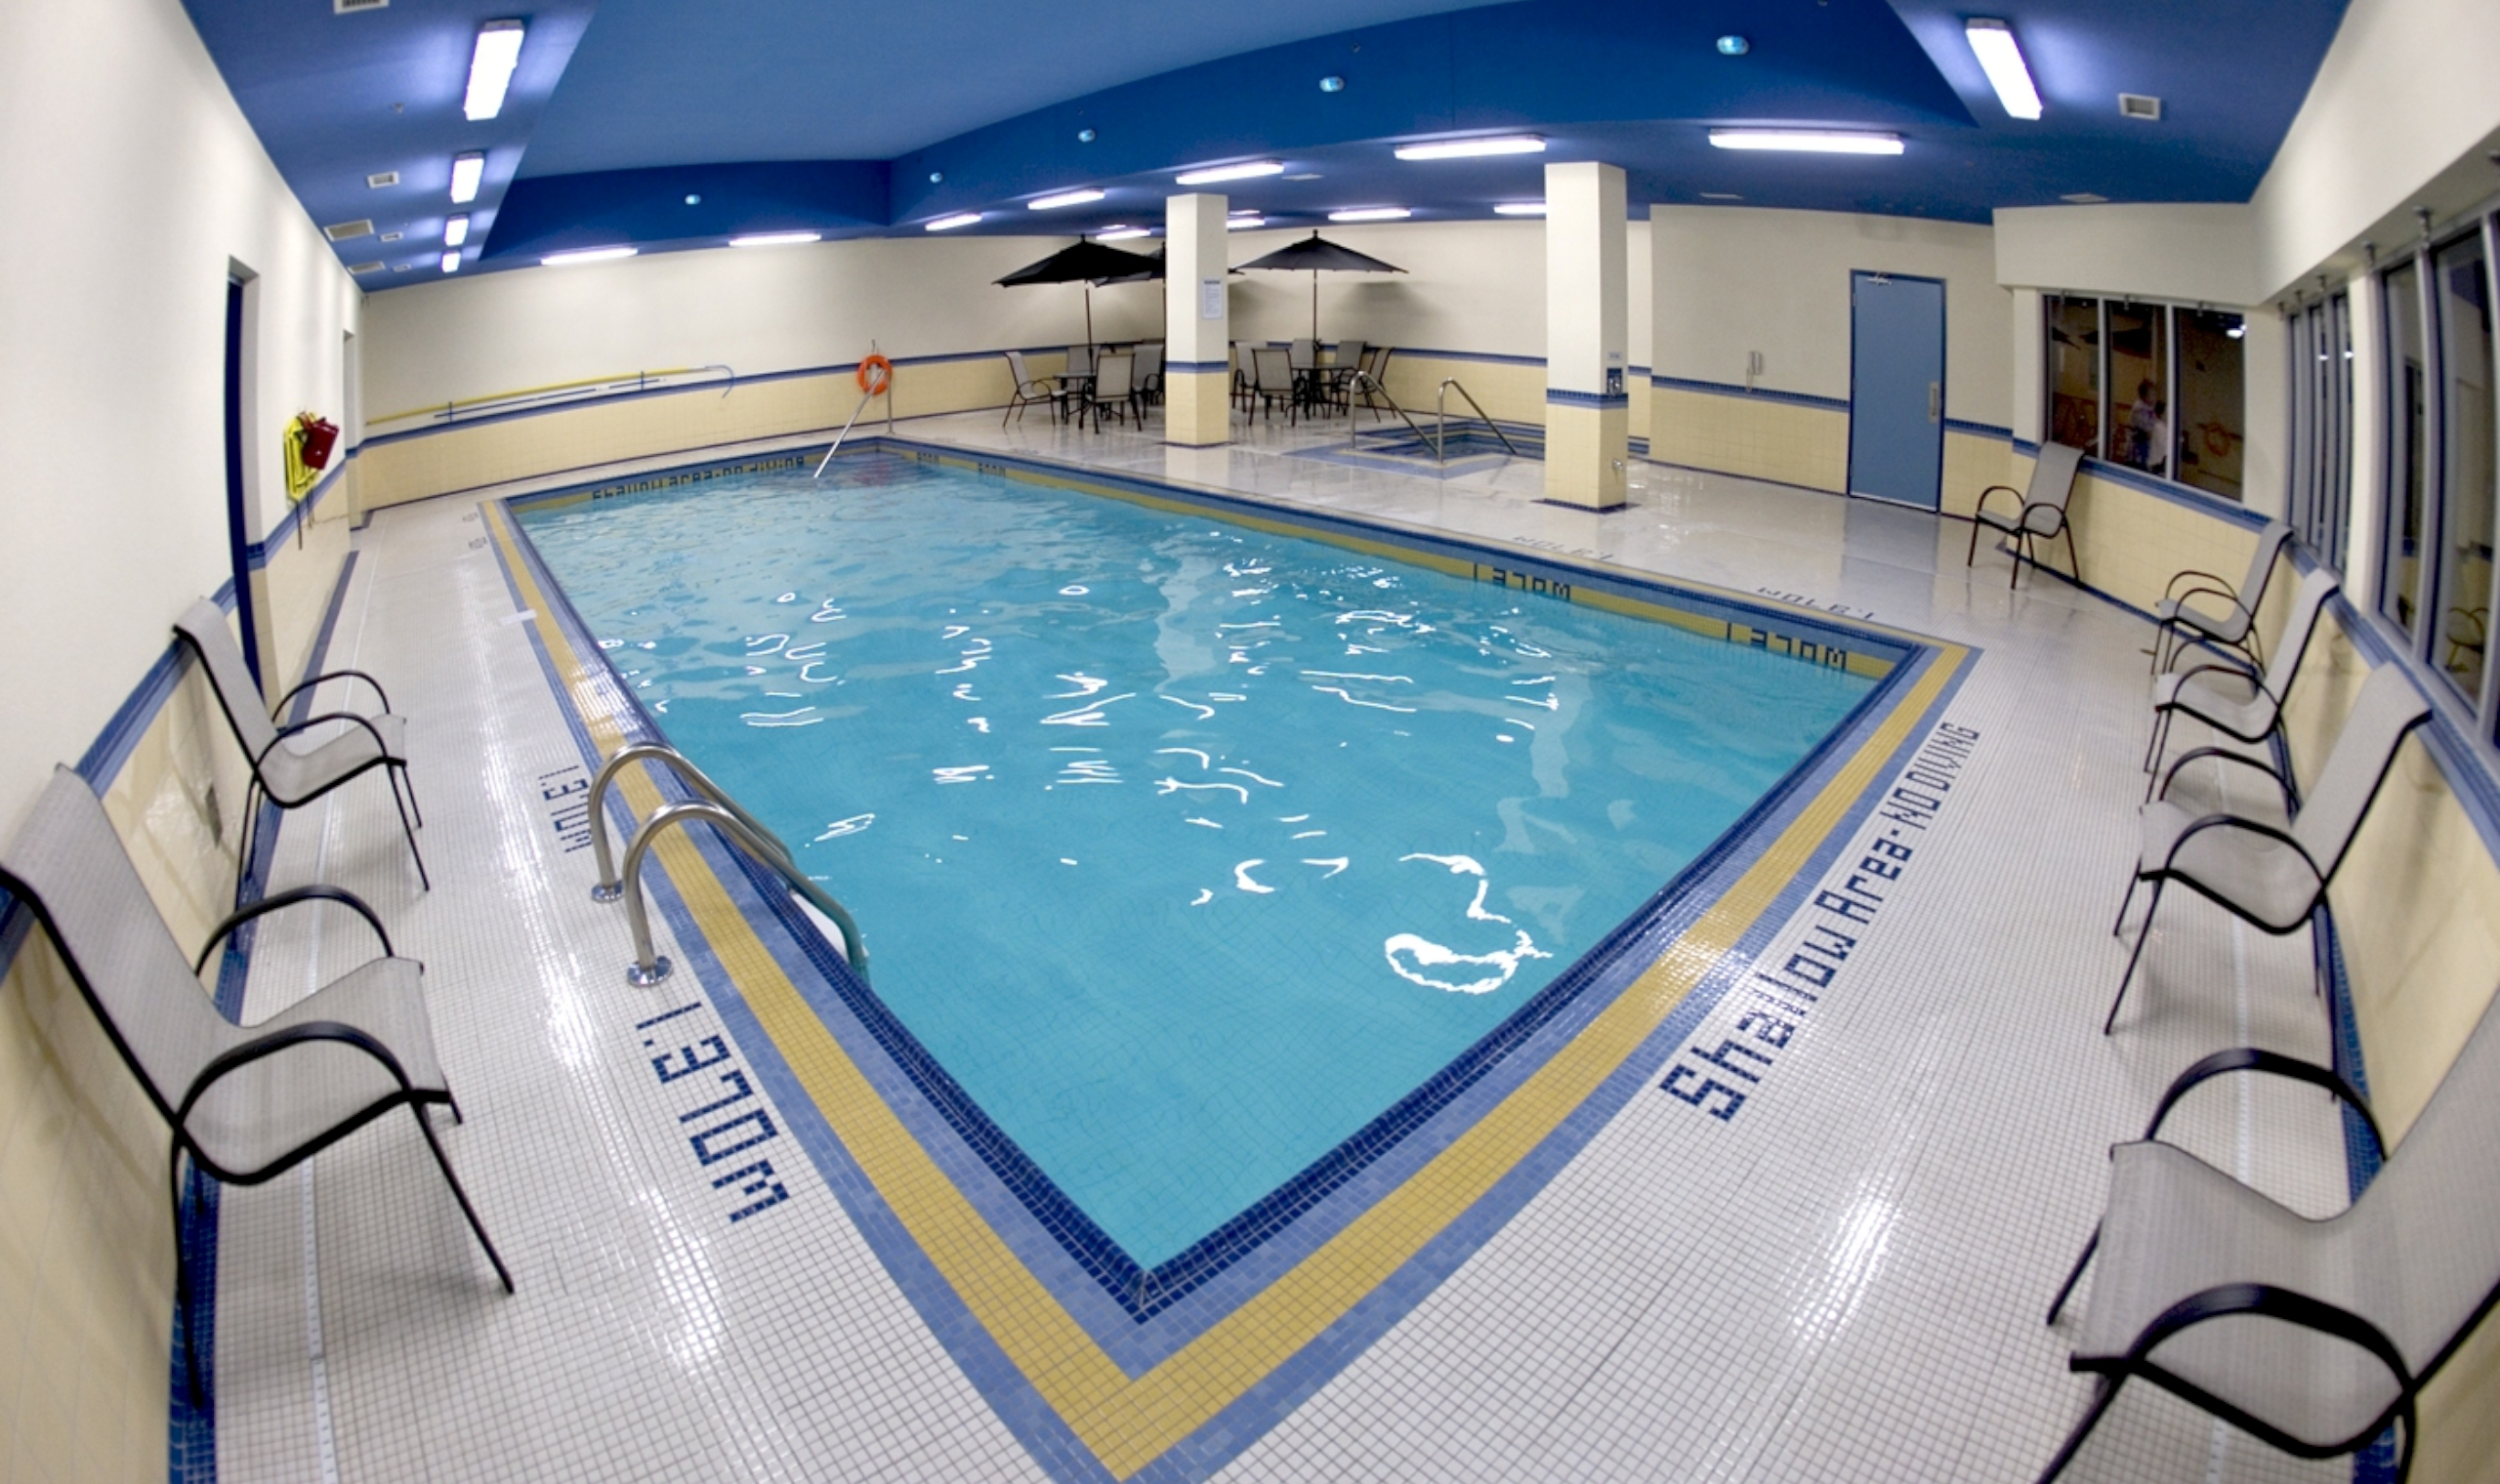 Best western fallsview niagara falls canadian affair - Victoria park swimming pool price ...